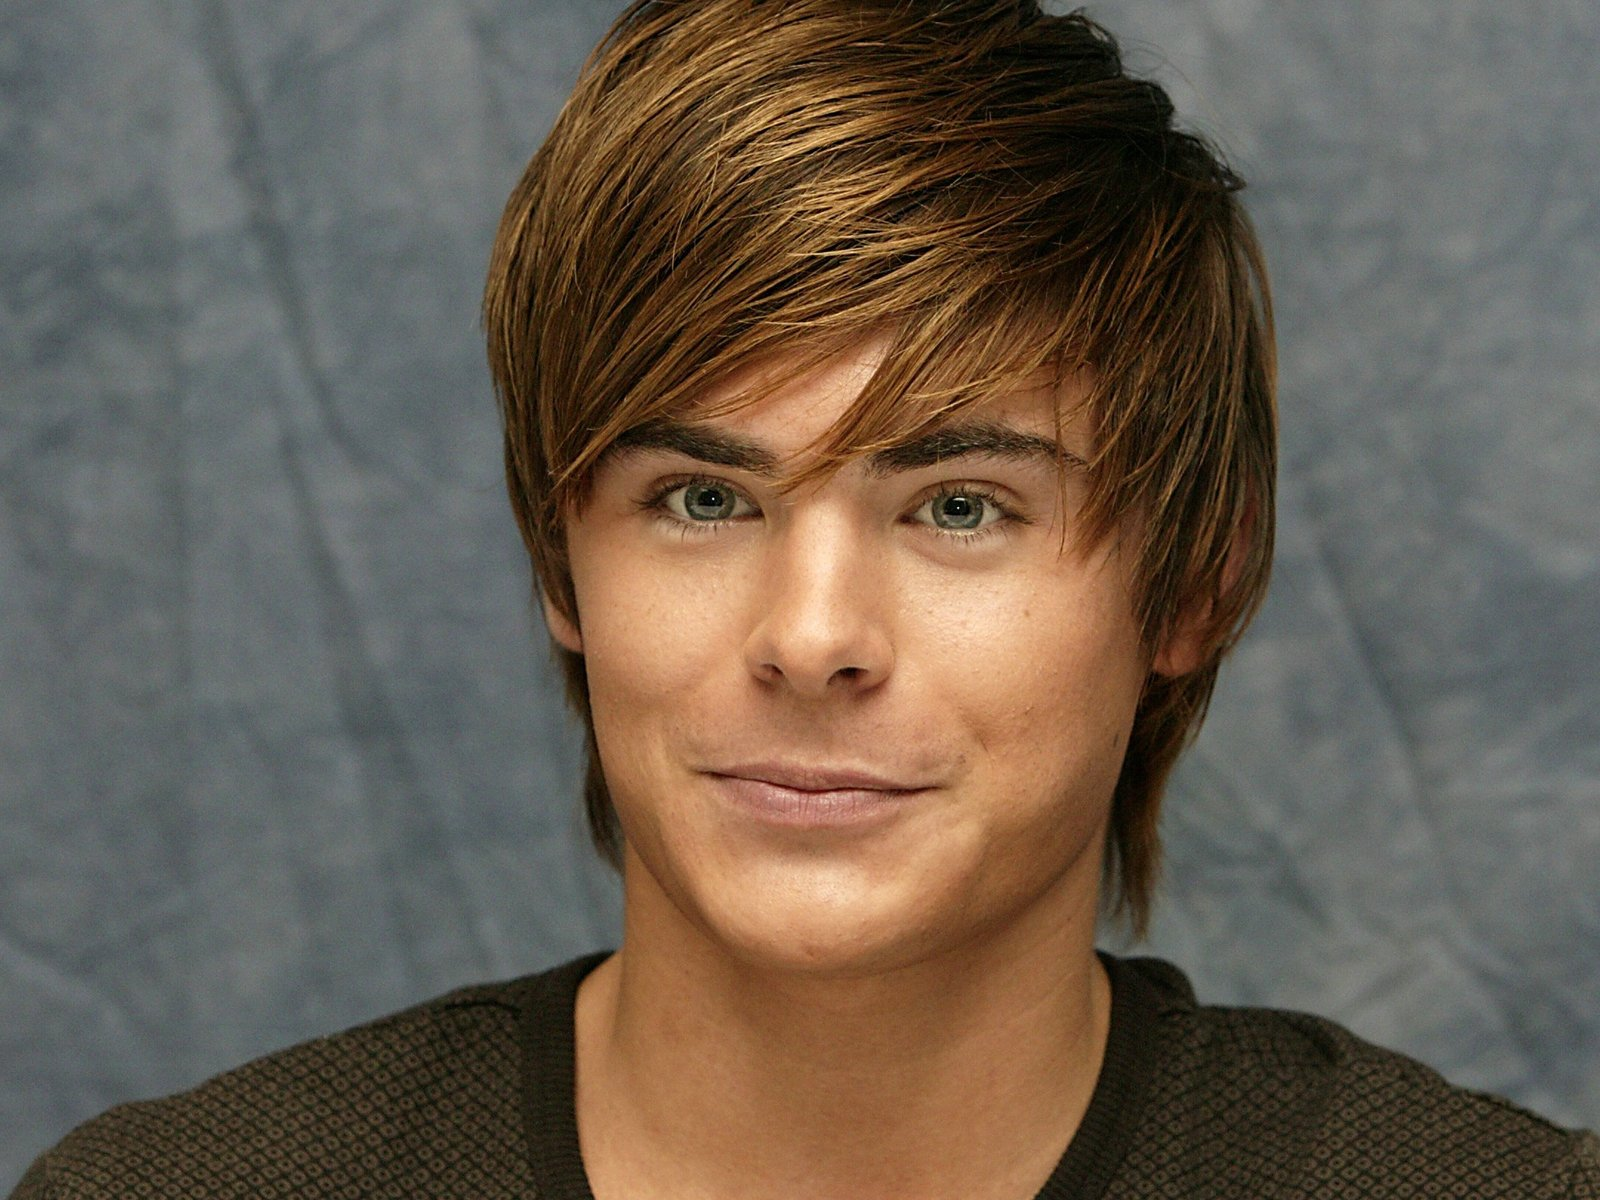 http://1.bp.blogspot.com/-CY8On8uVqpk/T5r1bQk49II/AAAAAAAAAbs/B2r8efL8h9Q/s1600/Zac+Efron+Wallpapers+5.jpg